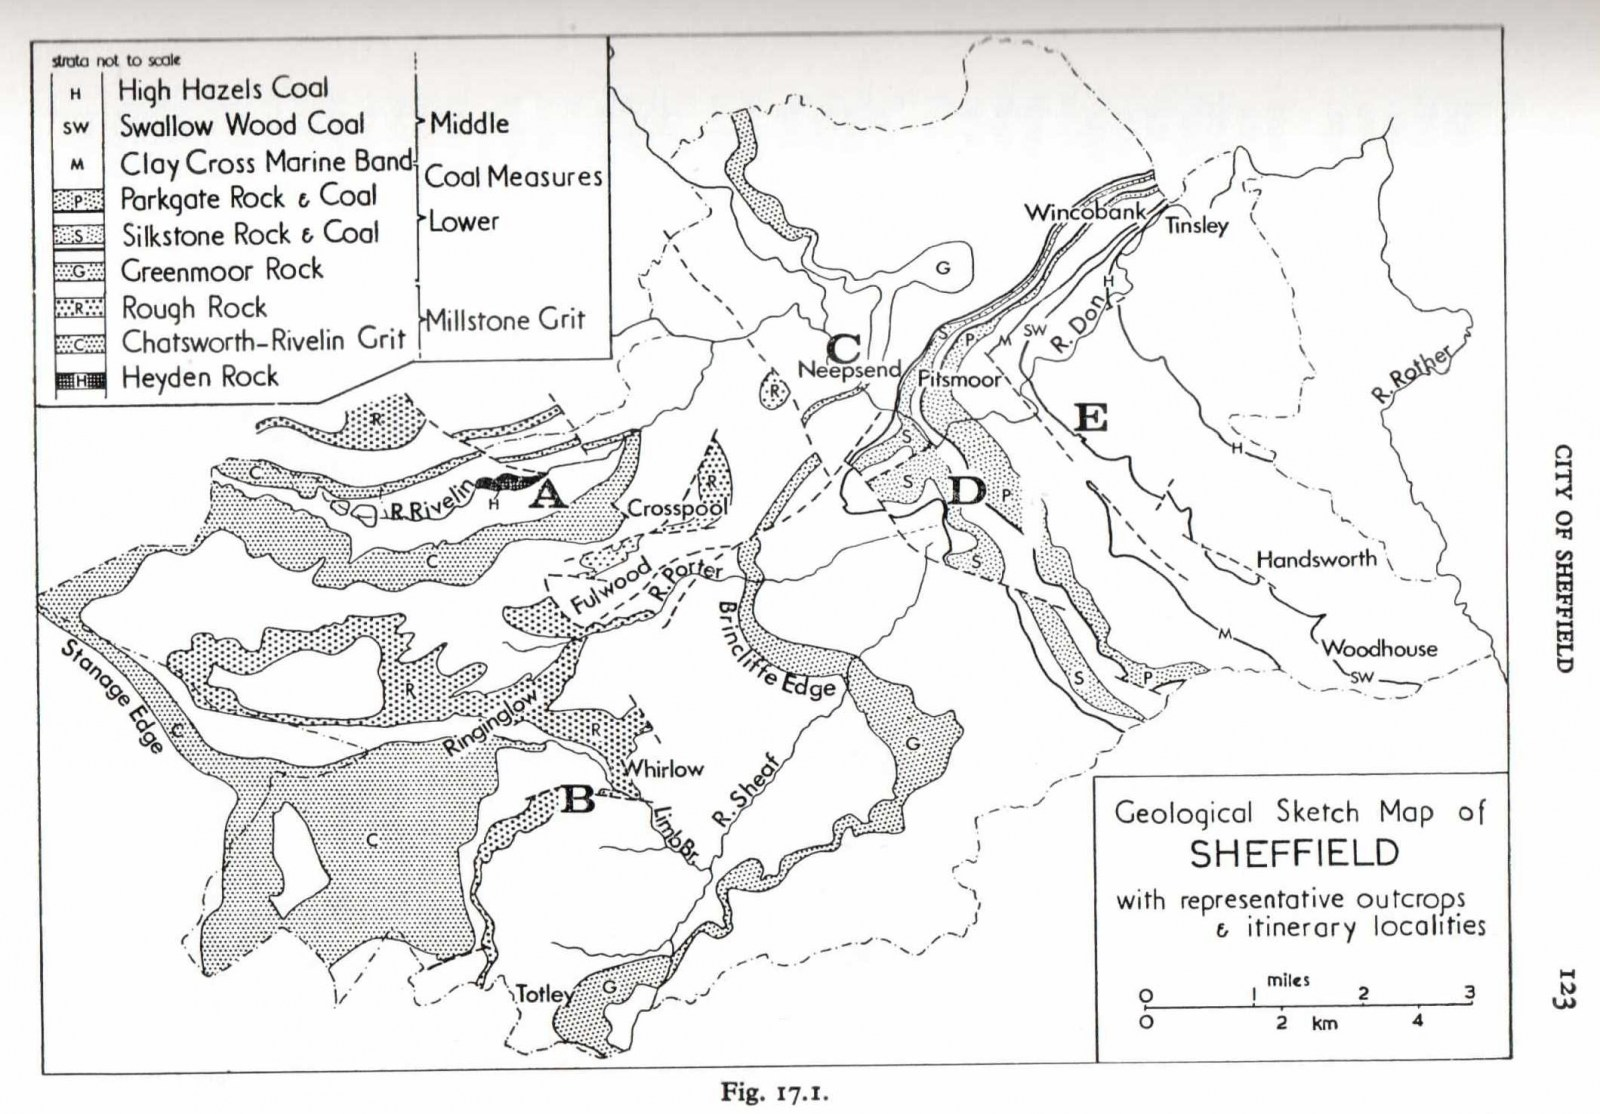 Geol Map Sheff City.jpg